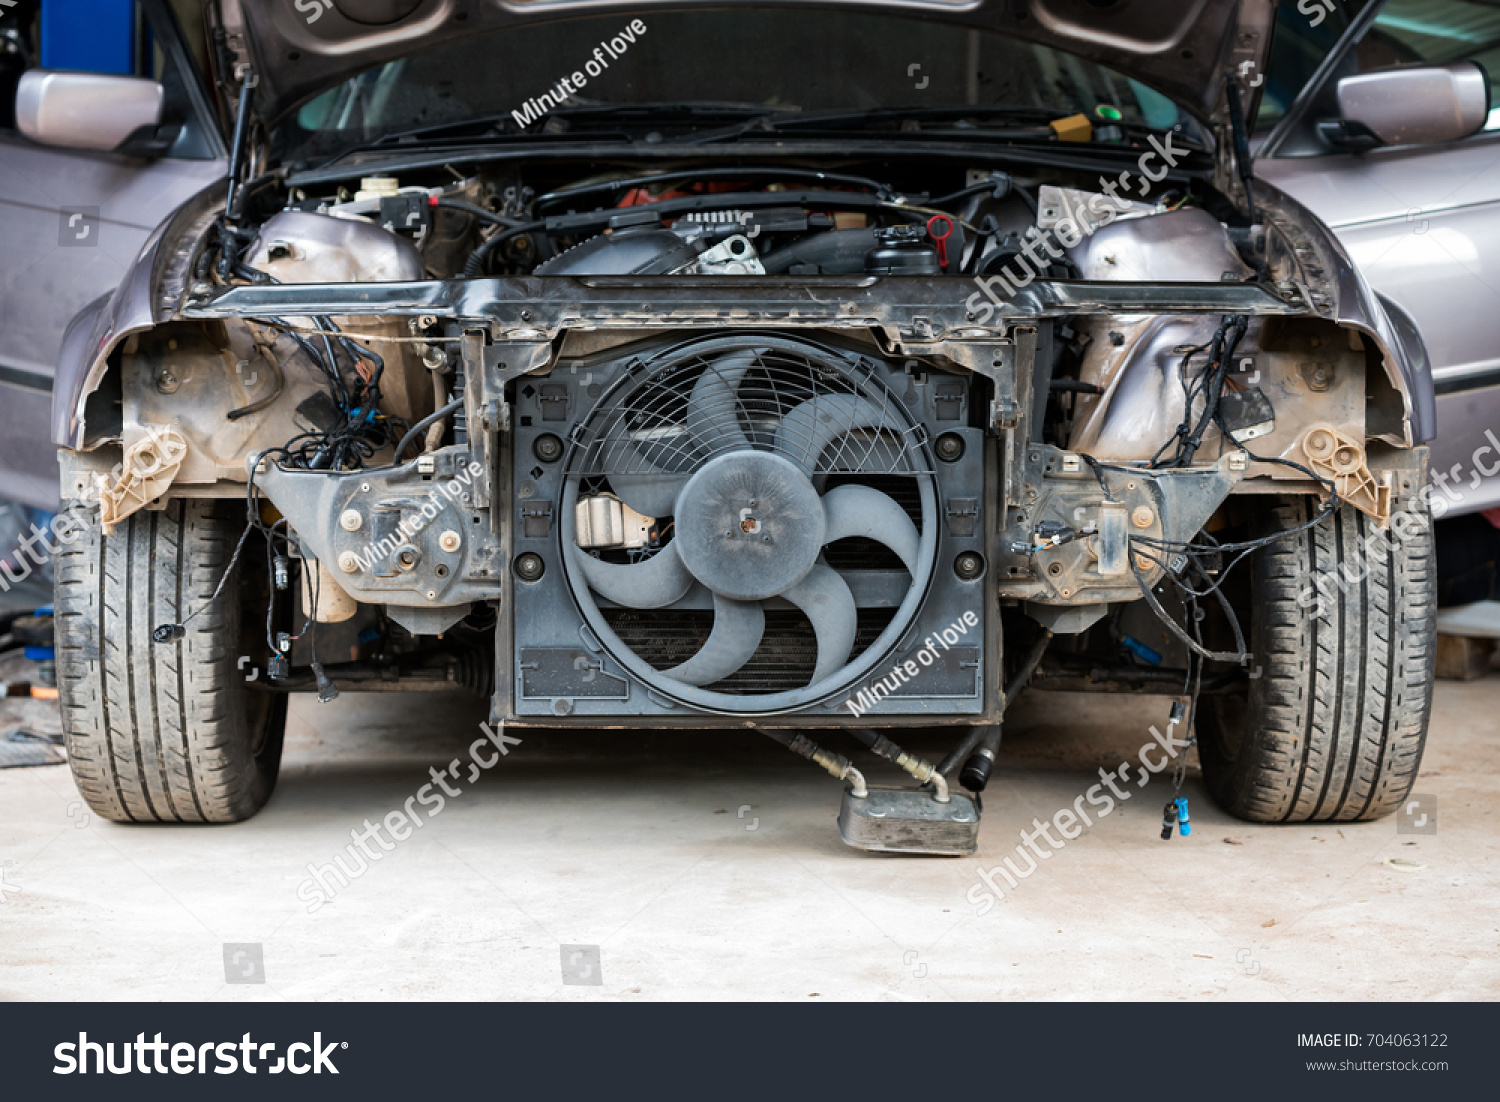 Cooling Fan System Old Car Has Stock Photo Edit Now 704063122 Auto Cool Of An Been Dismantling For Maintenance In Garage